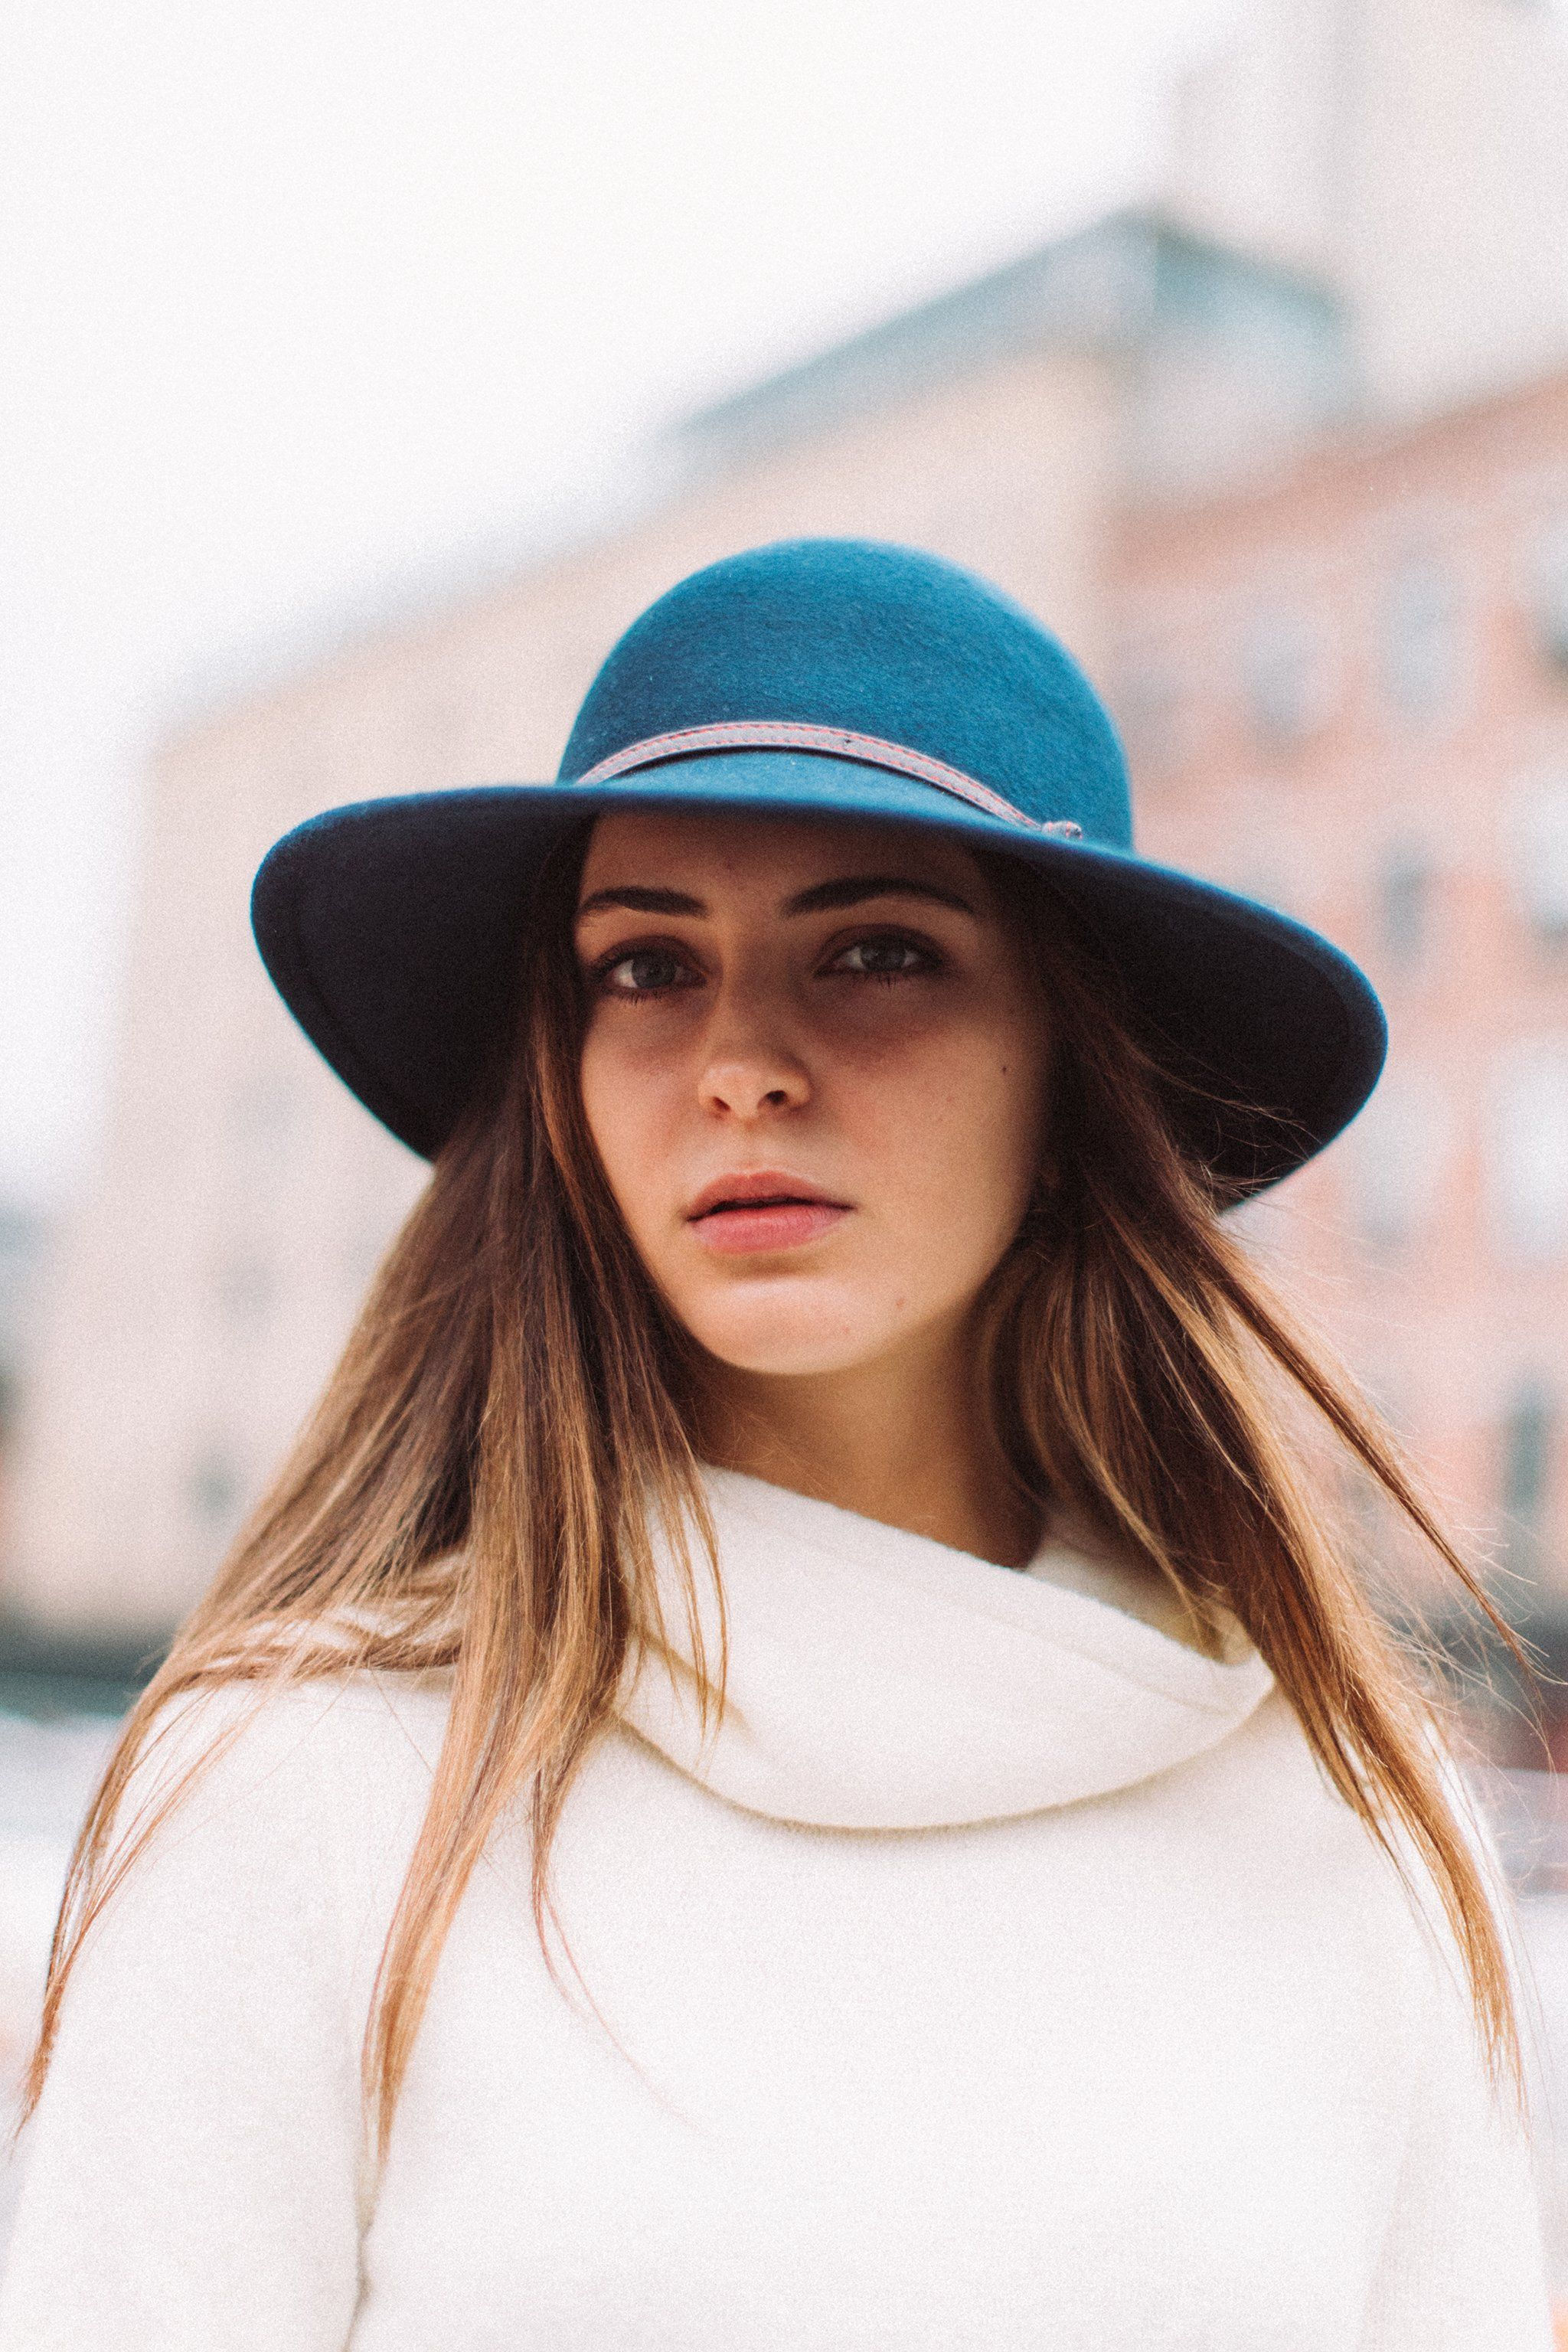 Frenchie Petersen Ladies Hats Casual Hats For Women Hats For Small Heads